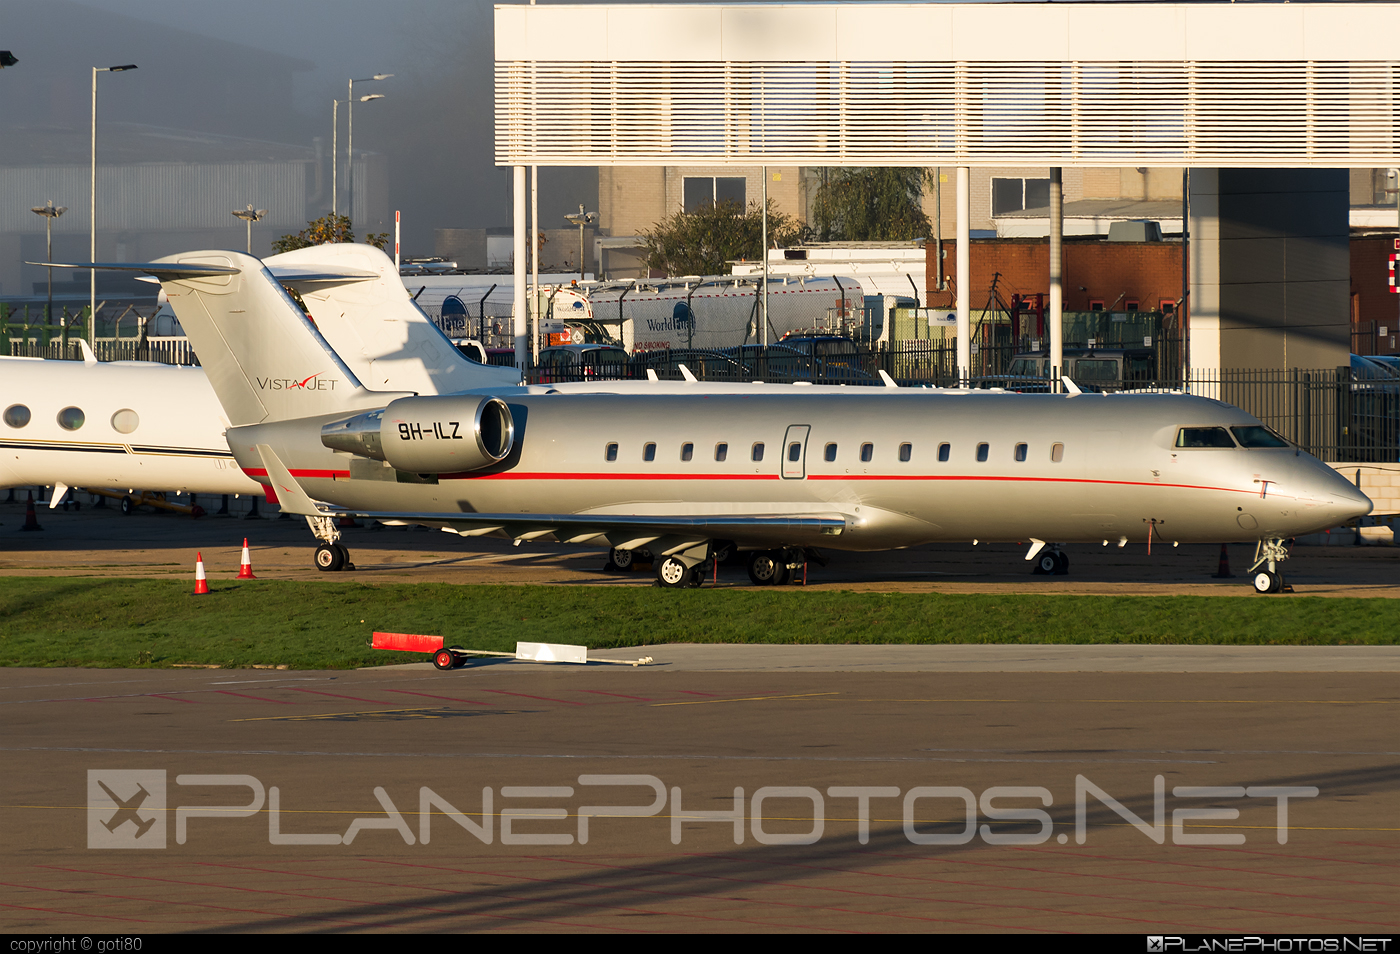 Bombardier CL-600-2B19 Challenger 850 - 9H-ILZ operated by VistaJet #bombardier #challenger850 #cl6002b19 #vistajet